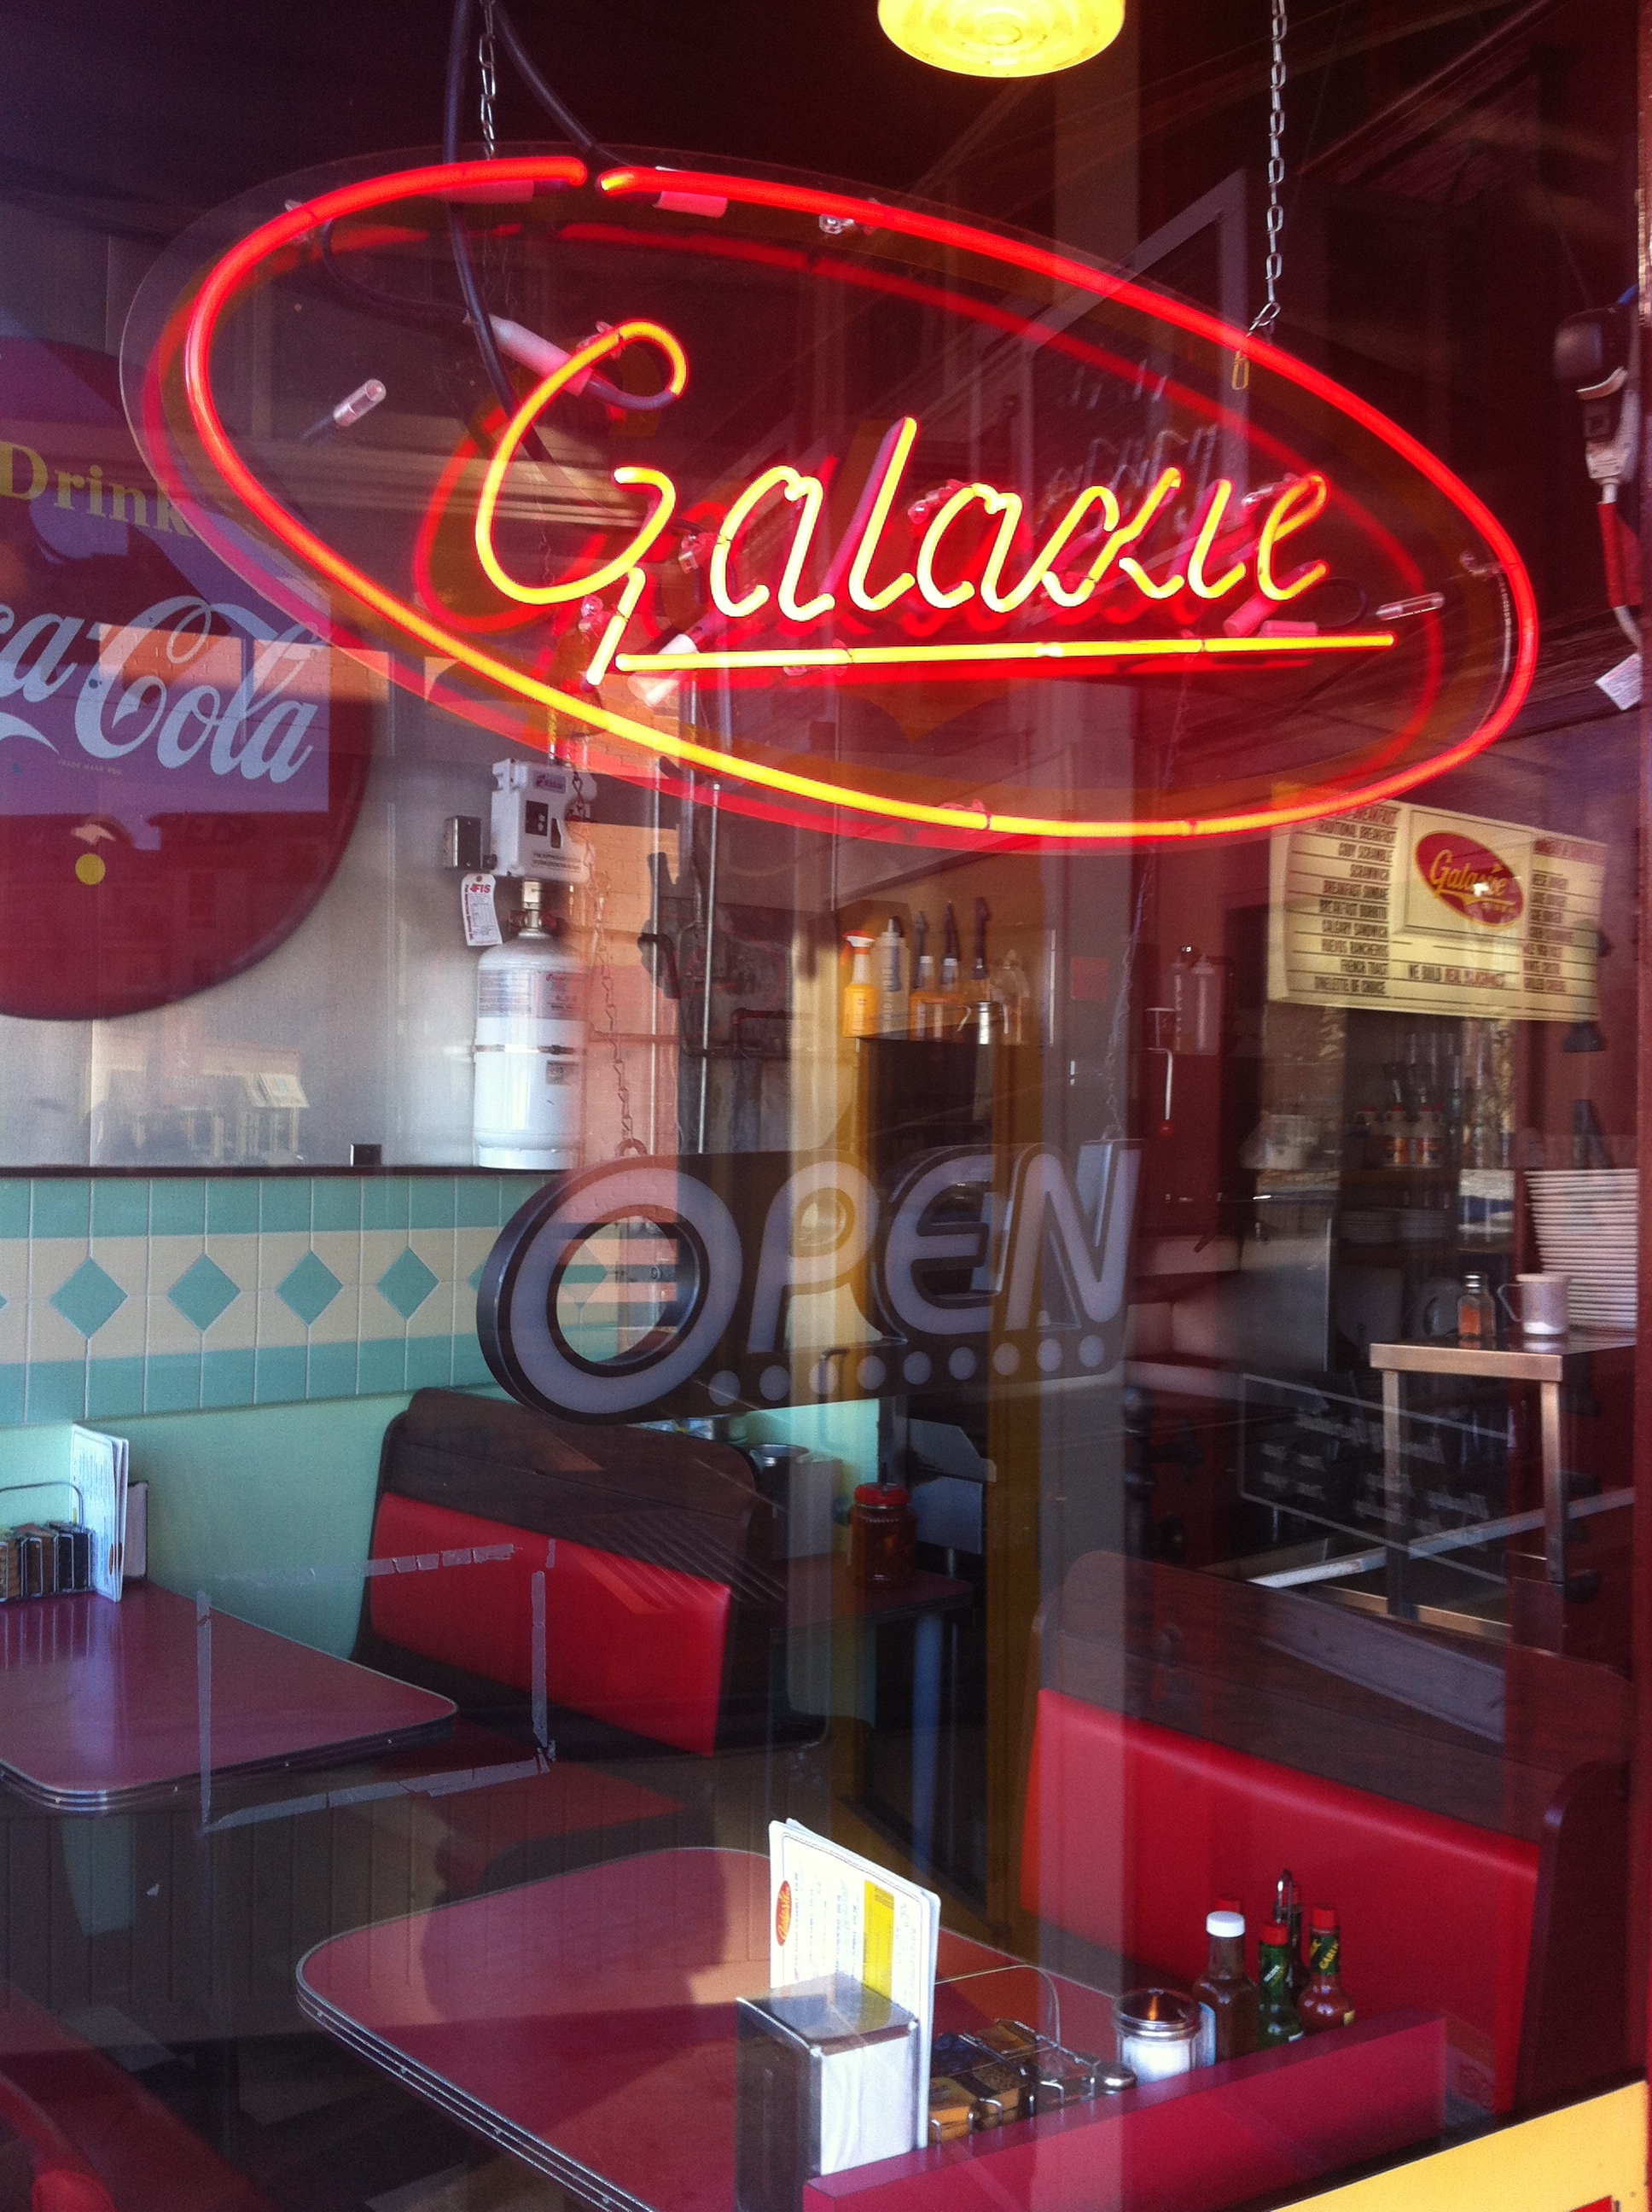 Galaxie Diner continues the vintage charm of the block.